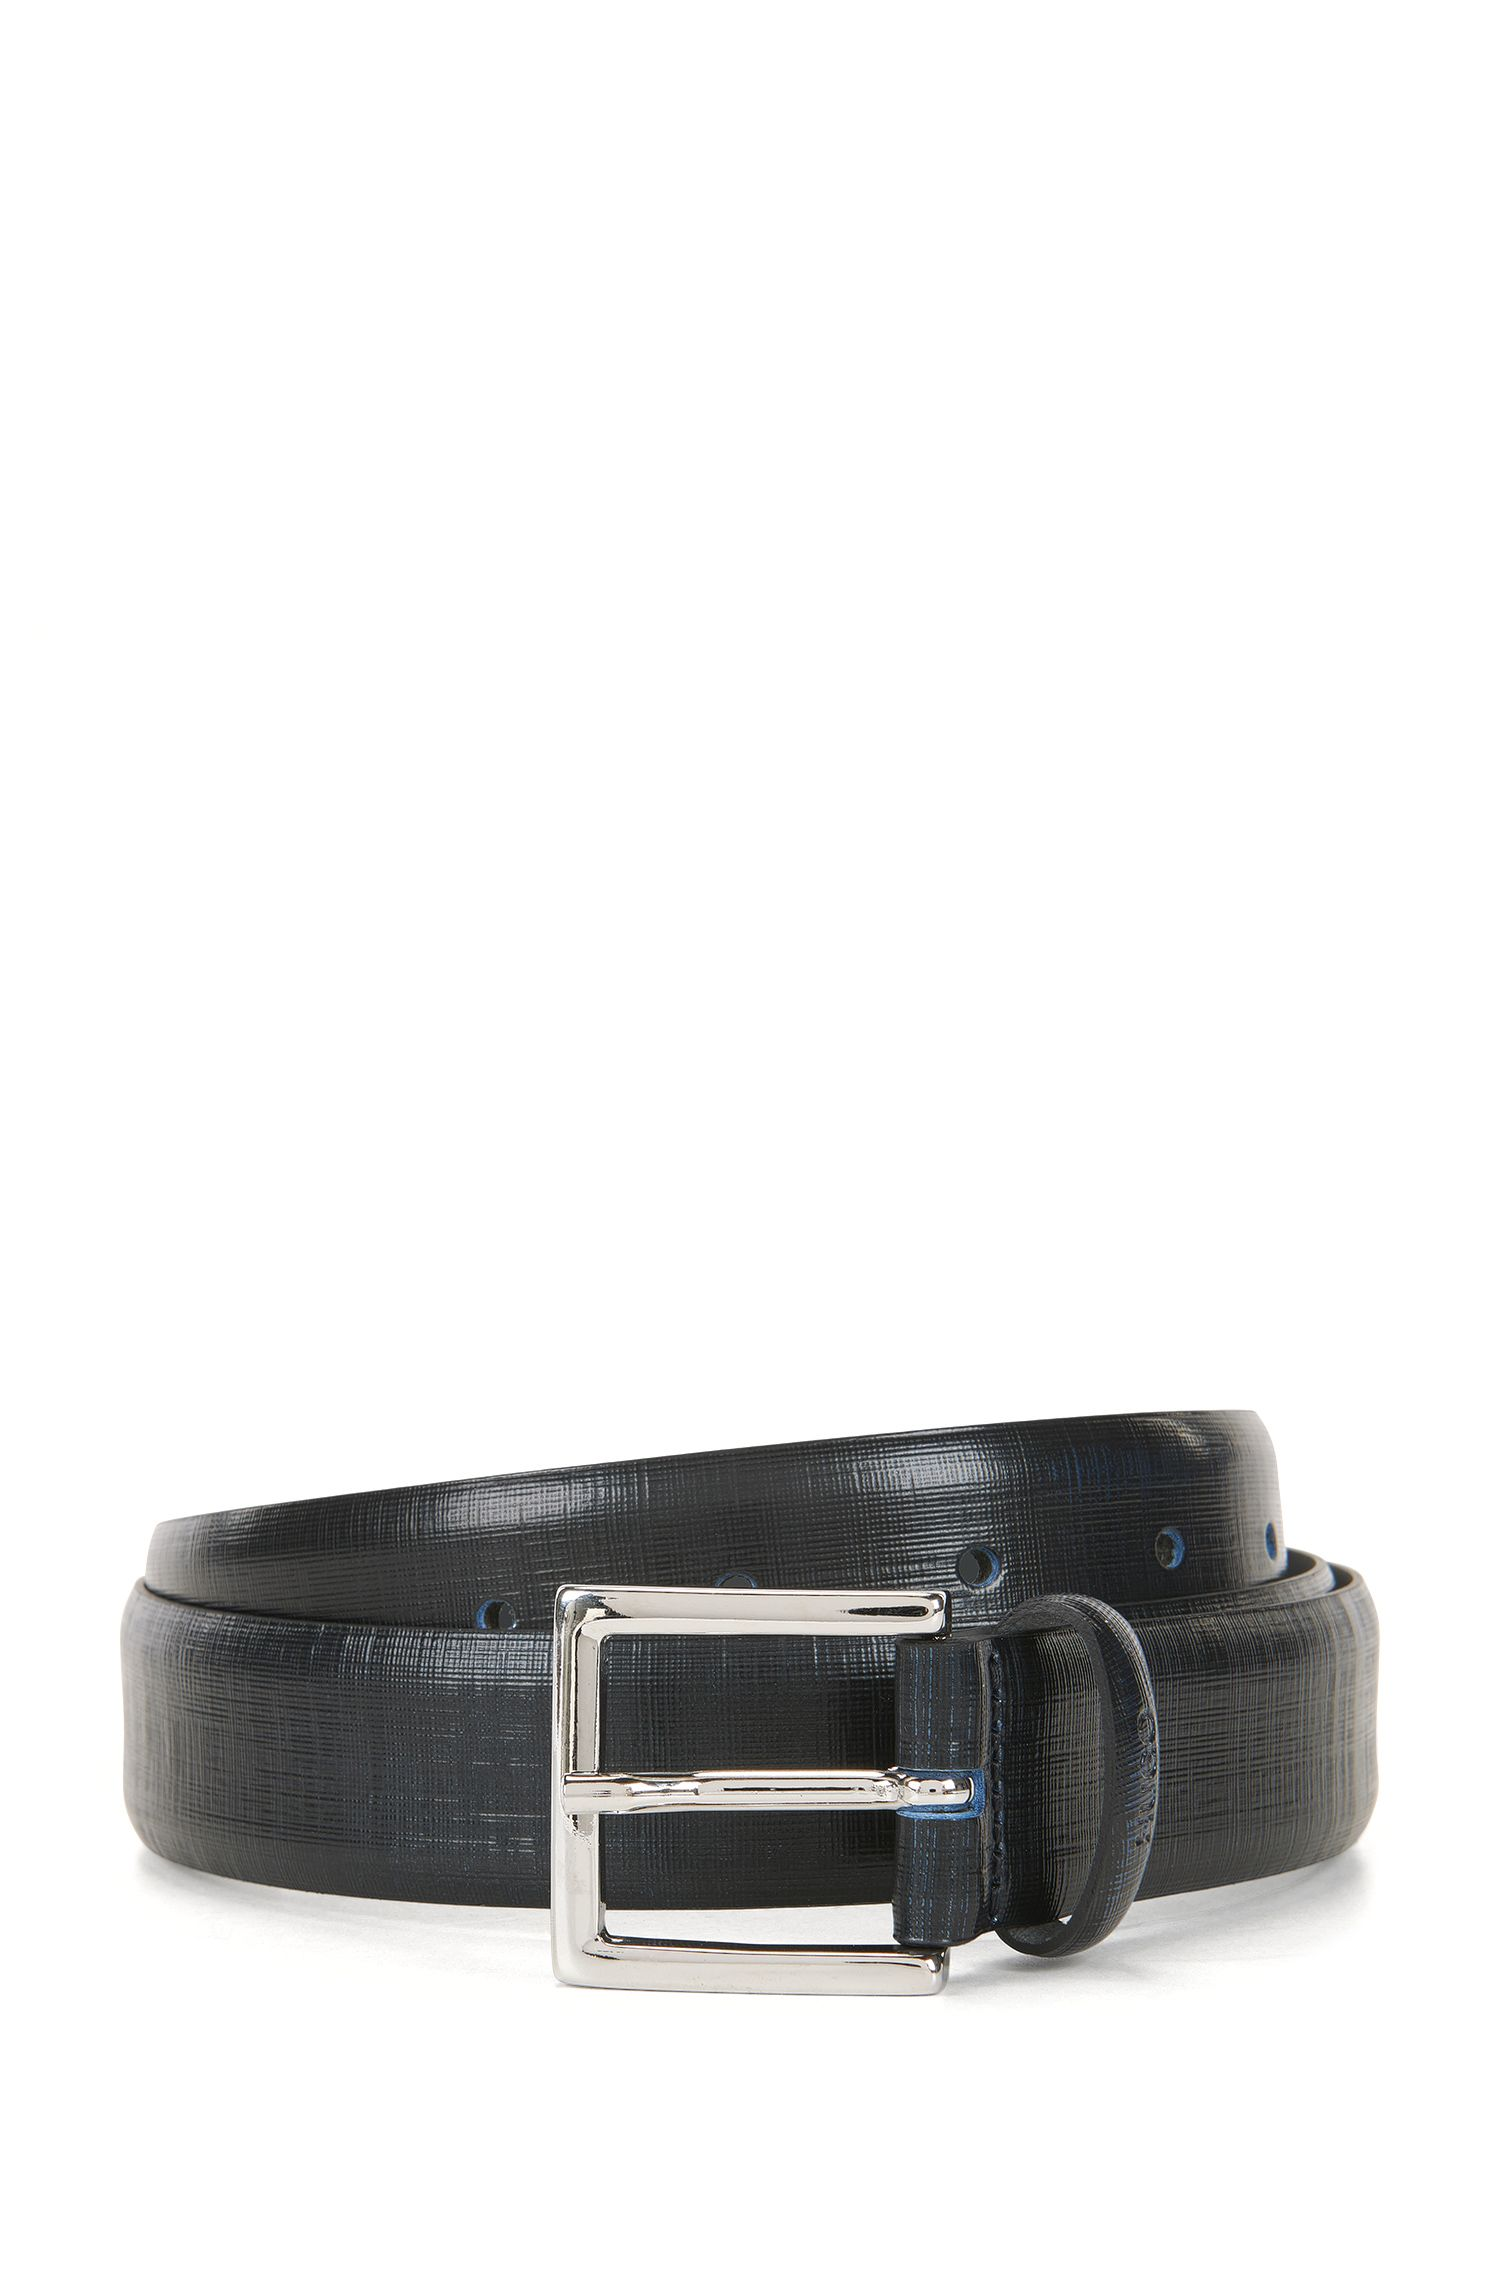 Two-tone belt in textured leather